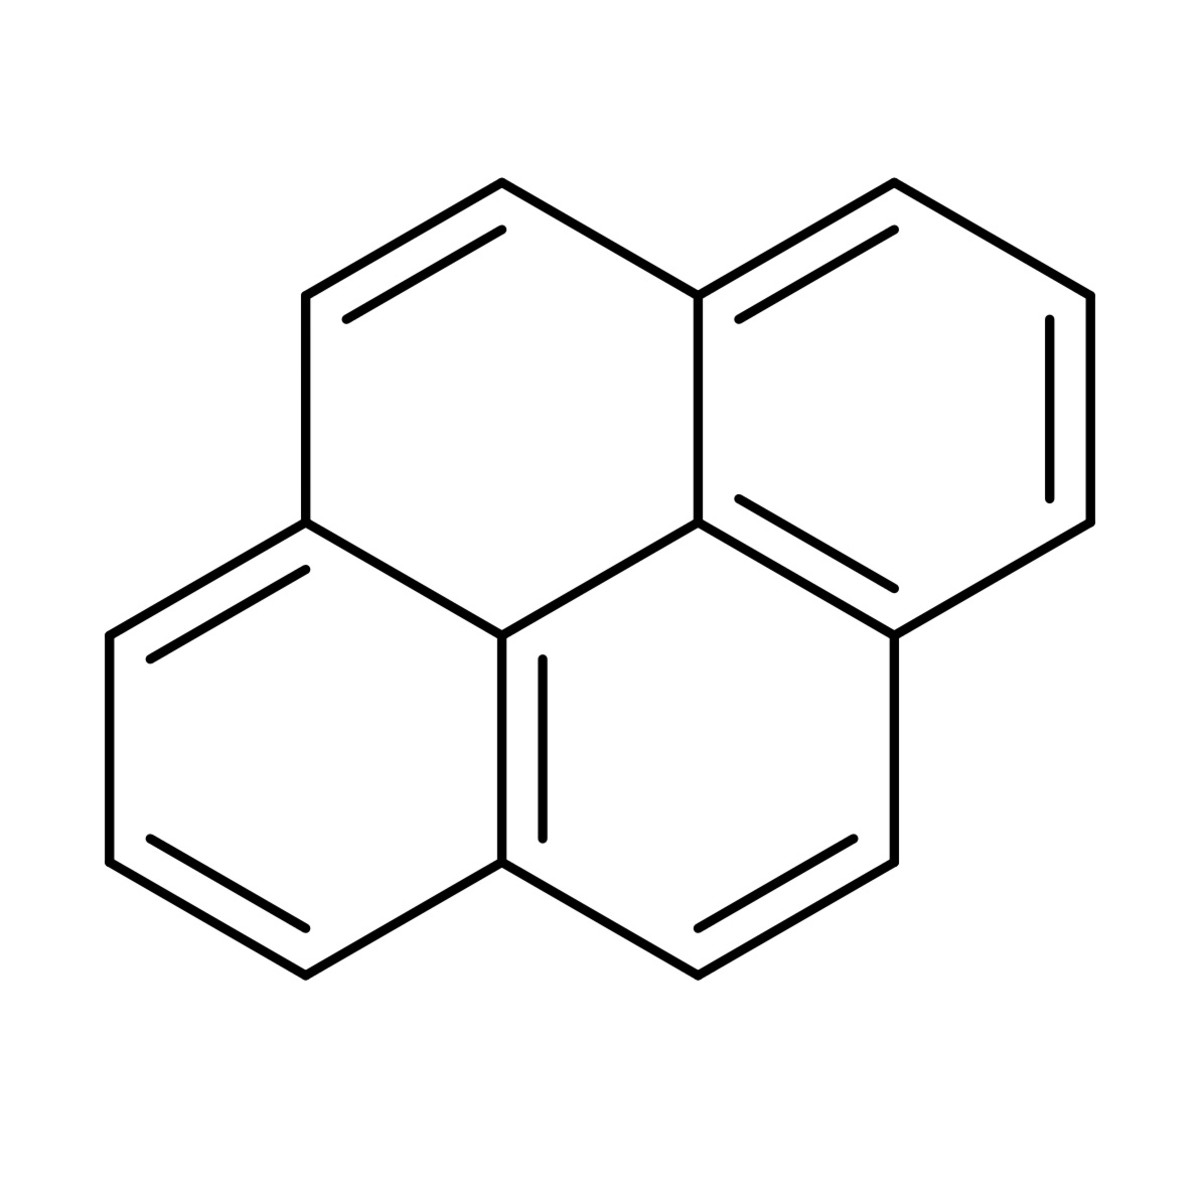 The structure of pyrene, one type of polycyclic aromatic hydrocarbon